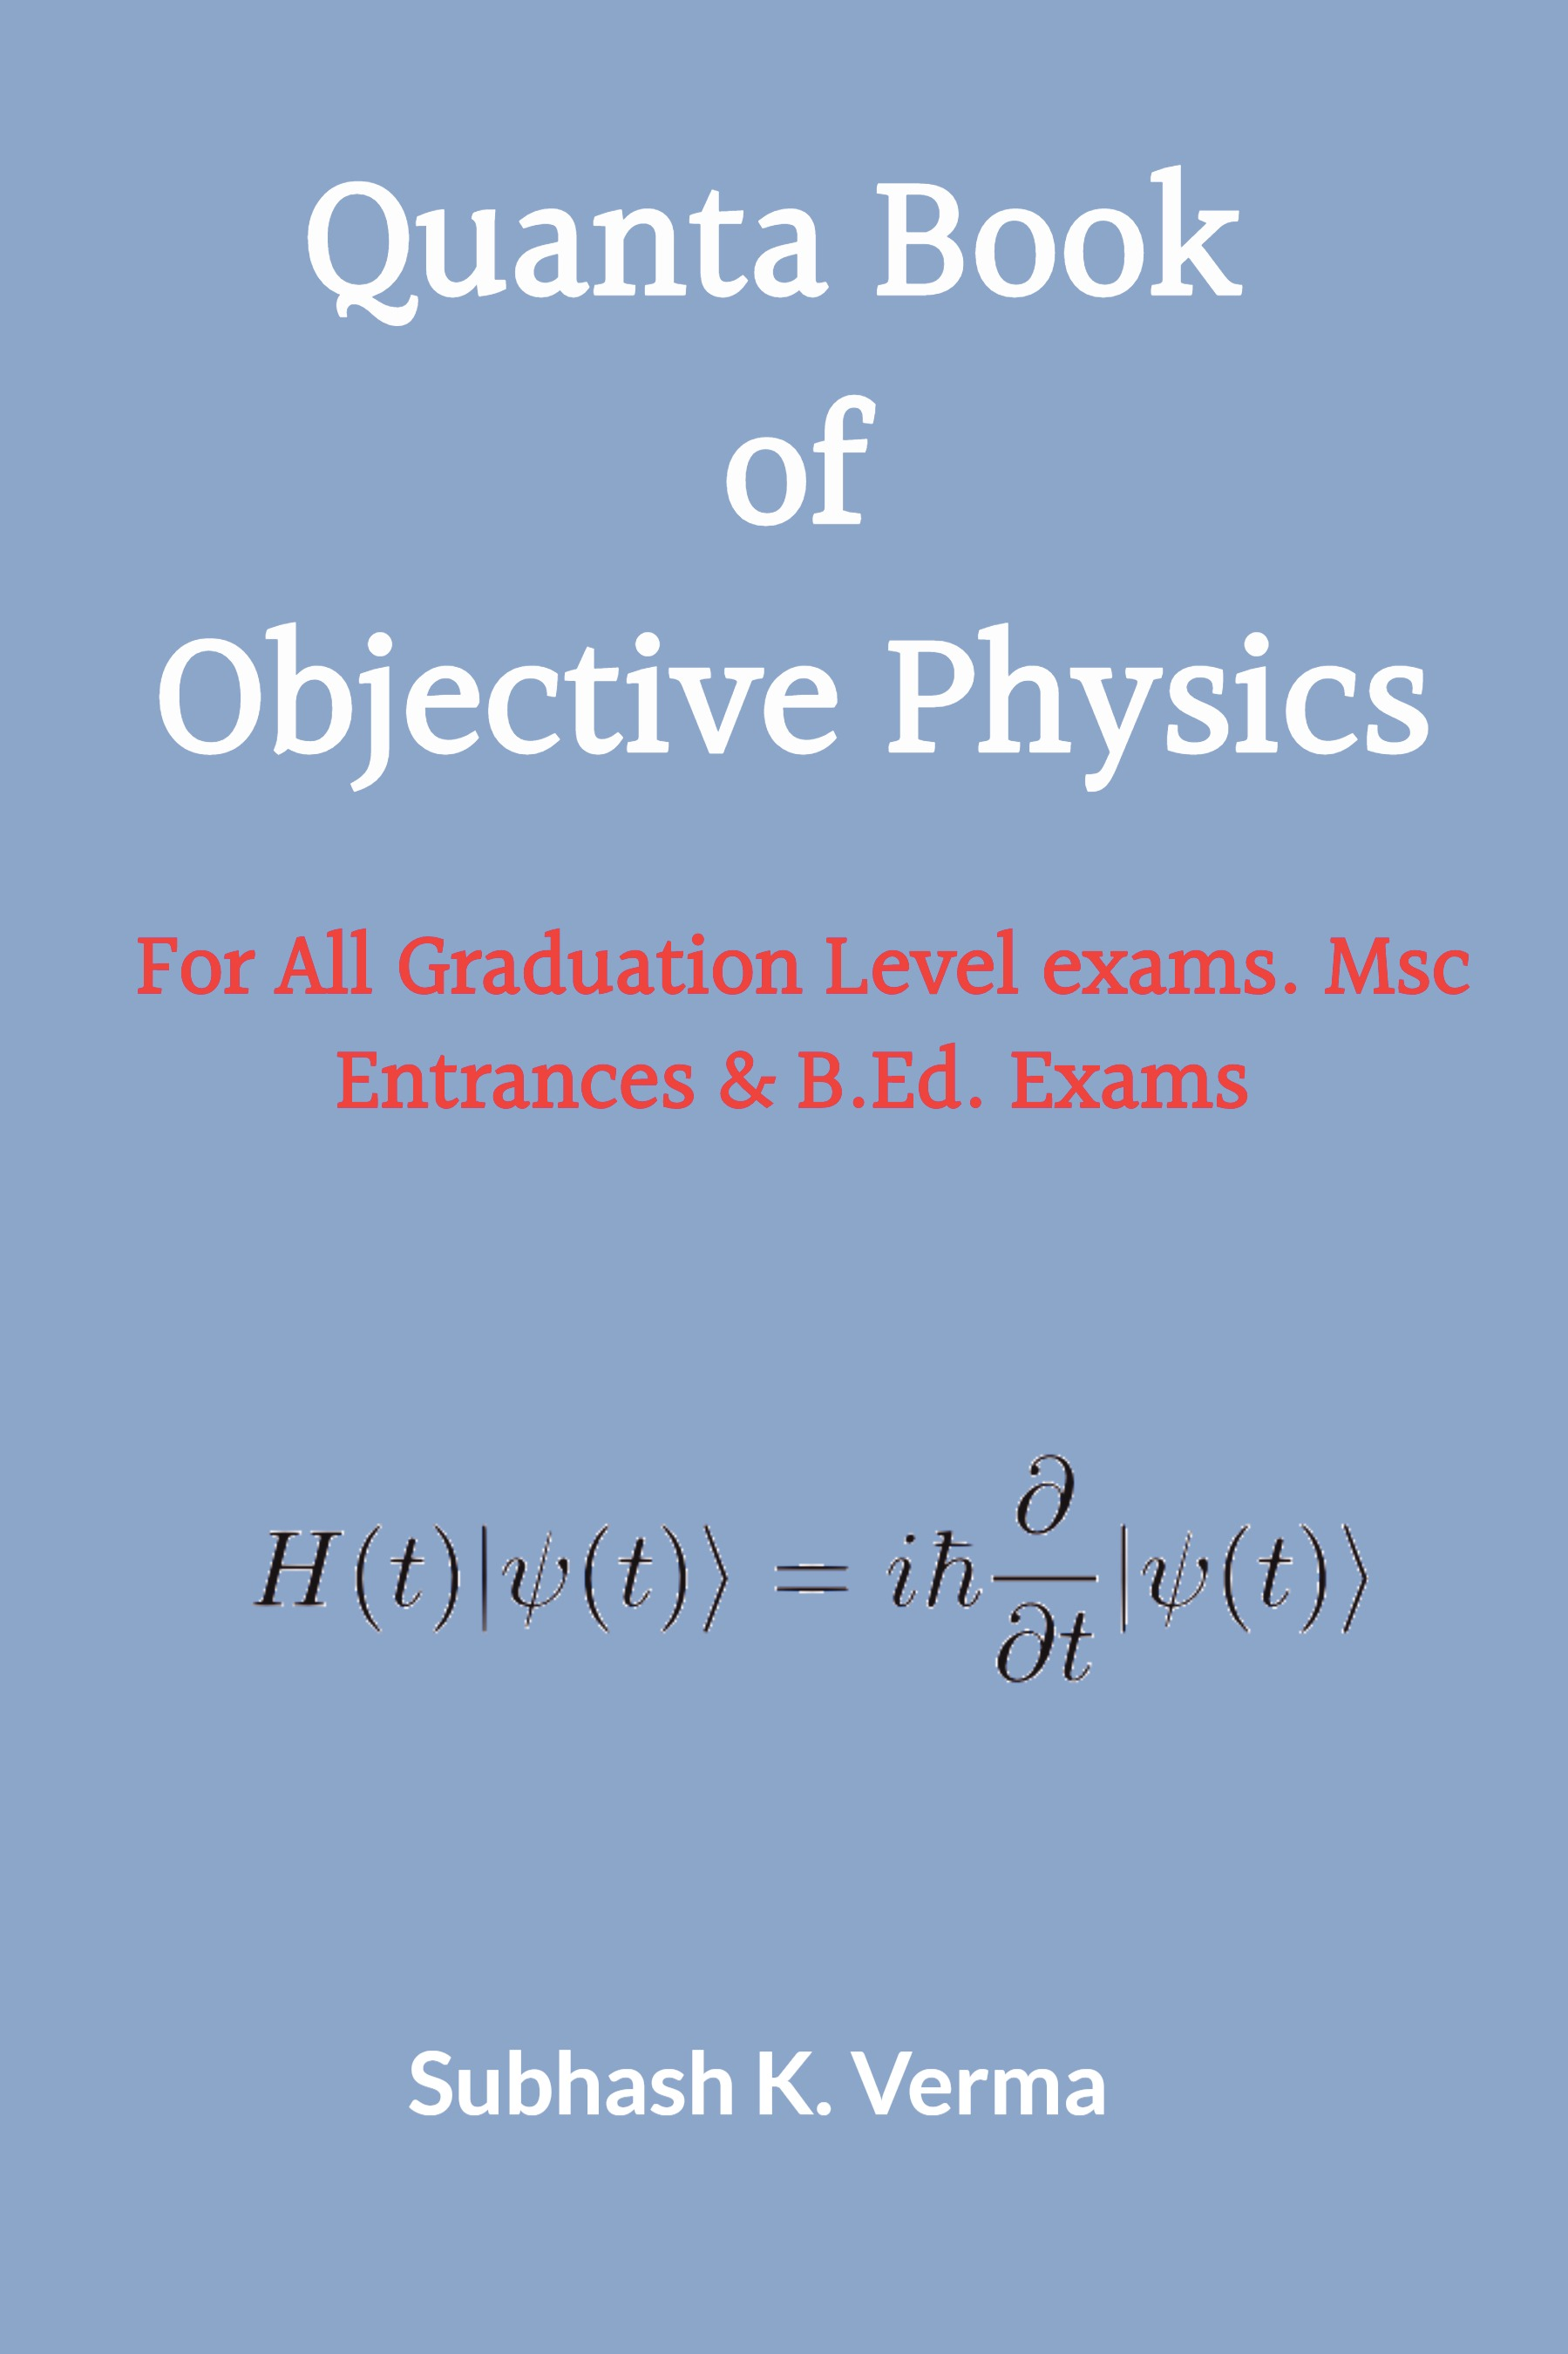 Objective Physics for All Graduation Level Exams & MSc